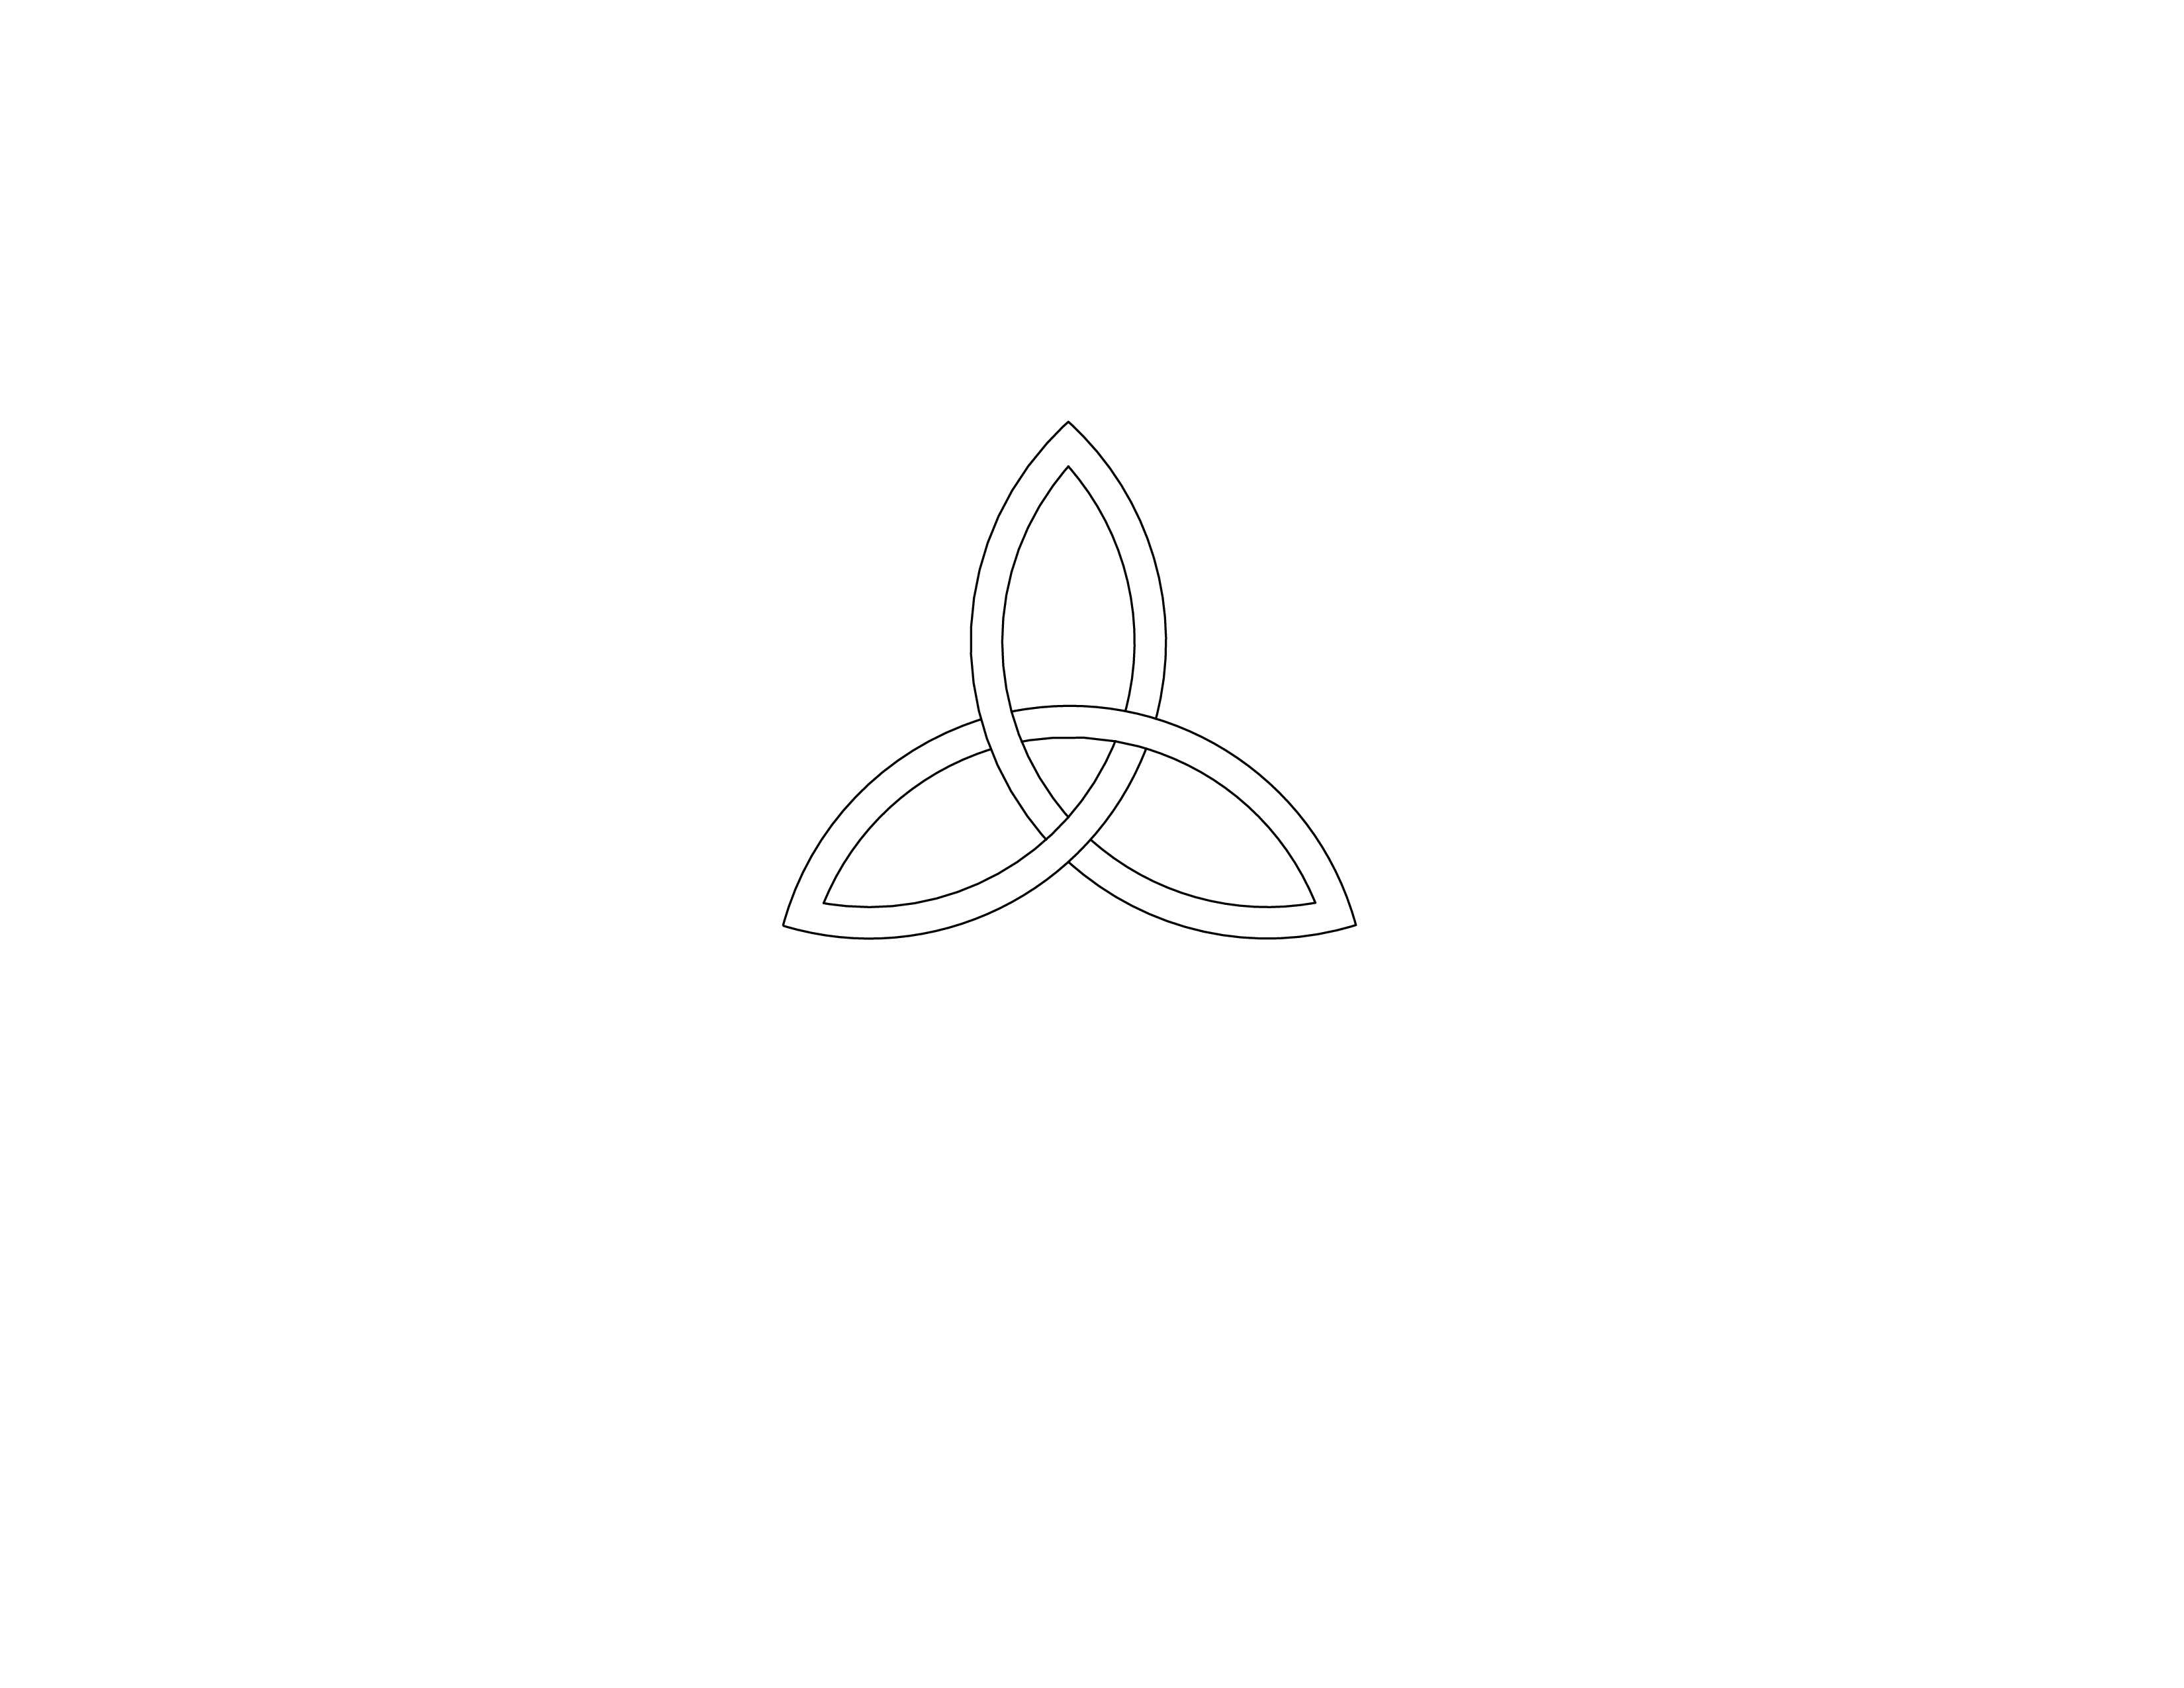 3300x2550 How To Draw A Simple Trinity Celtic Knot In 10 Steps Level I